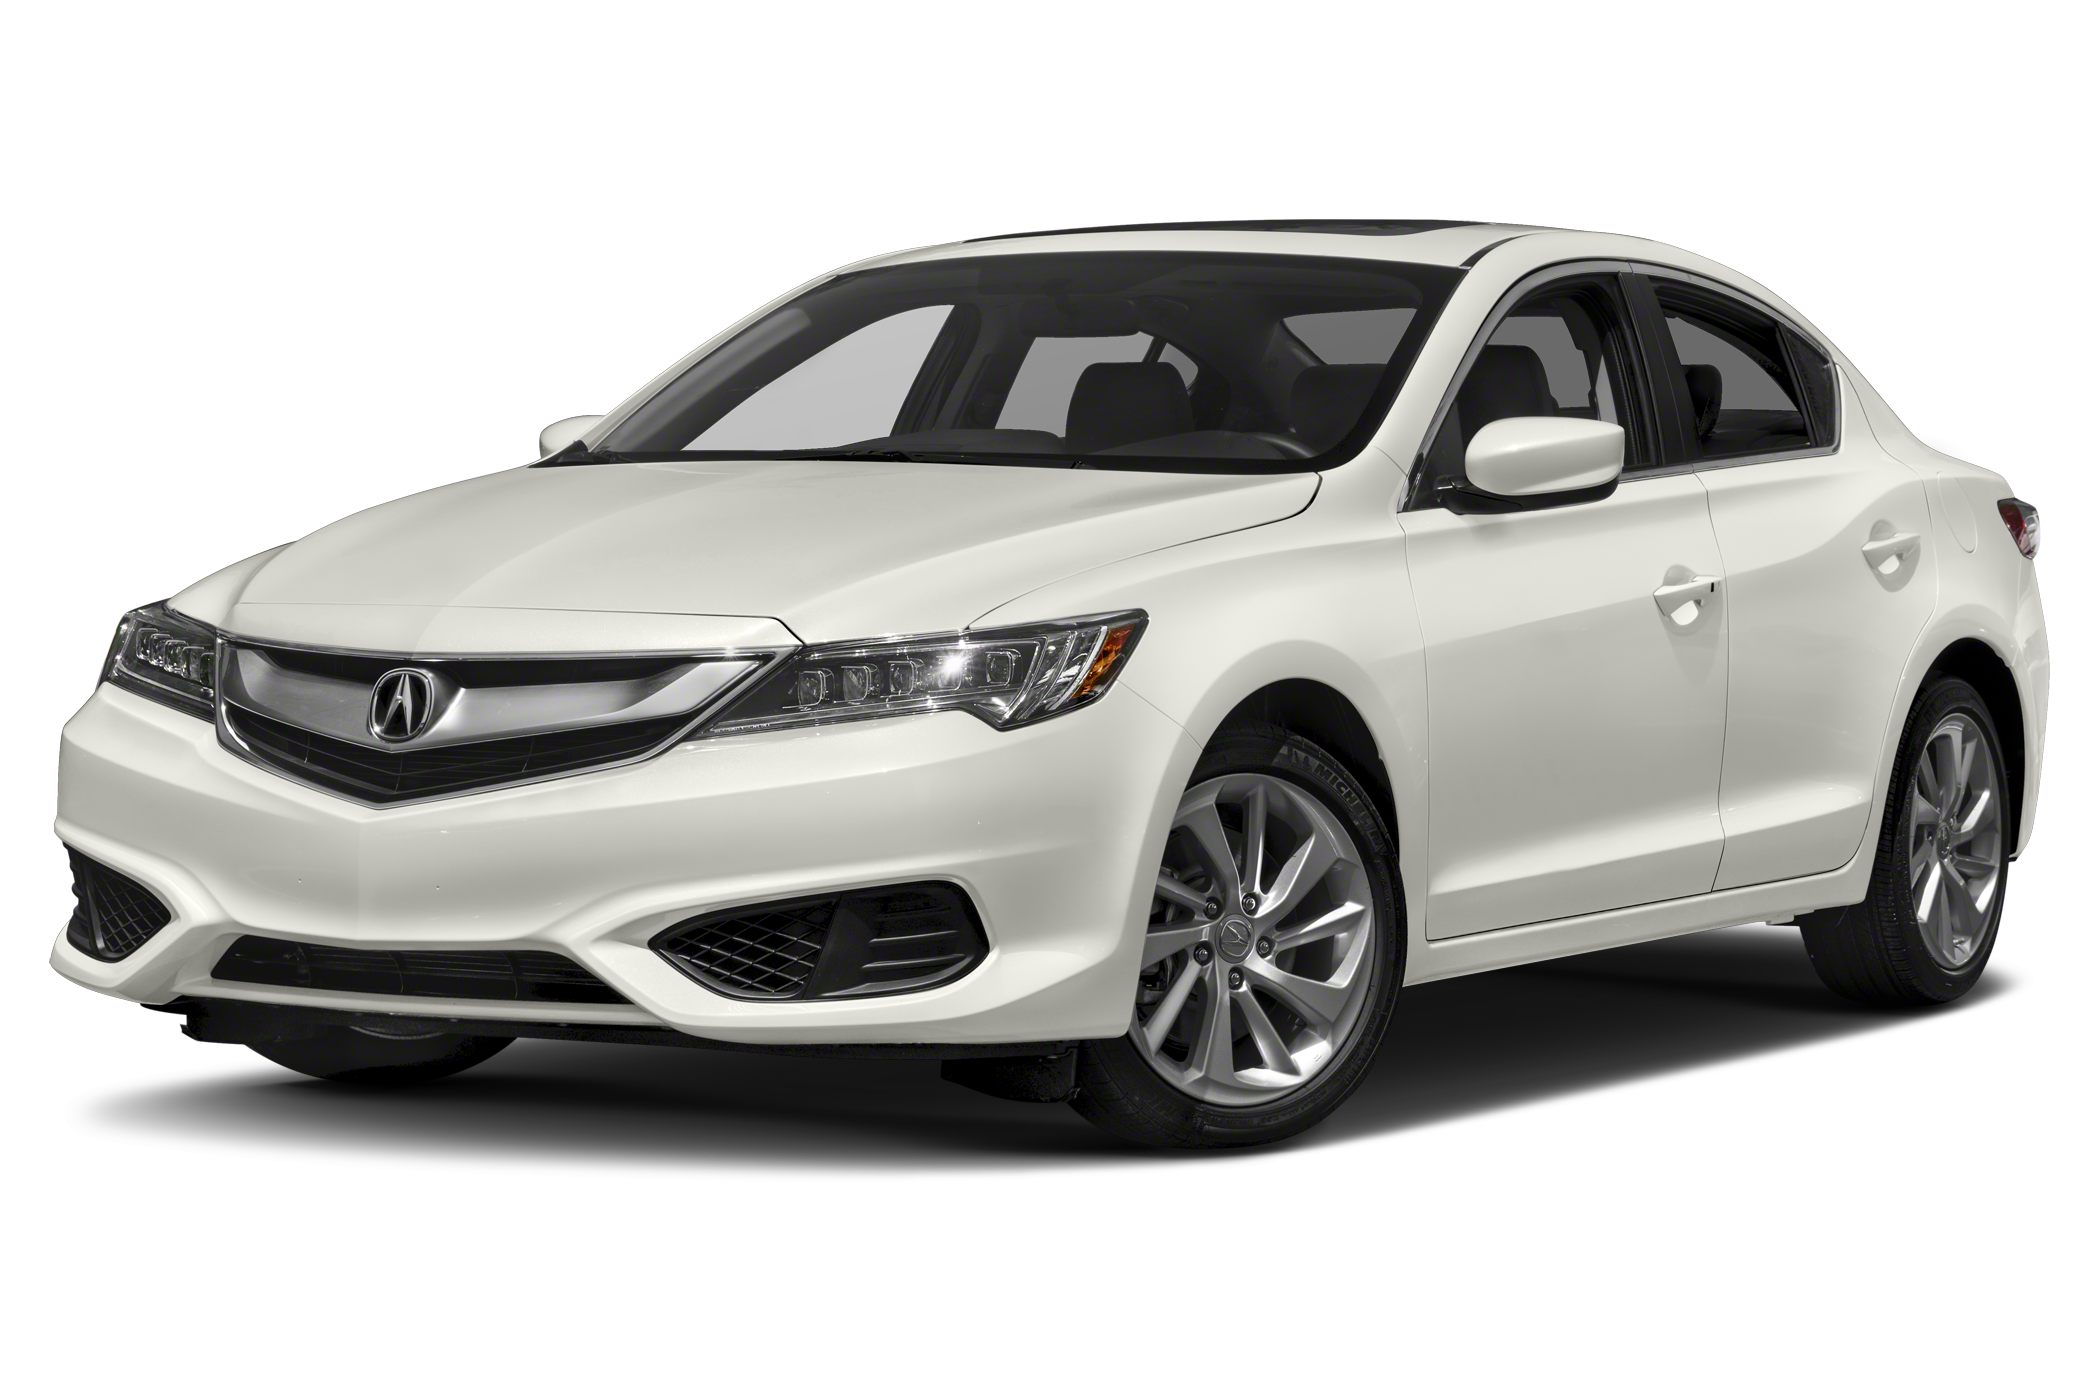 2017 Acura ILX Base Call ASAP Call and ask for details This 2017 ILX is for Acura lovers looking